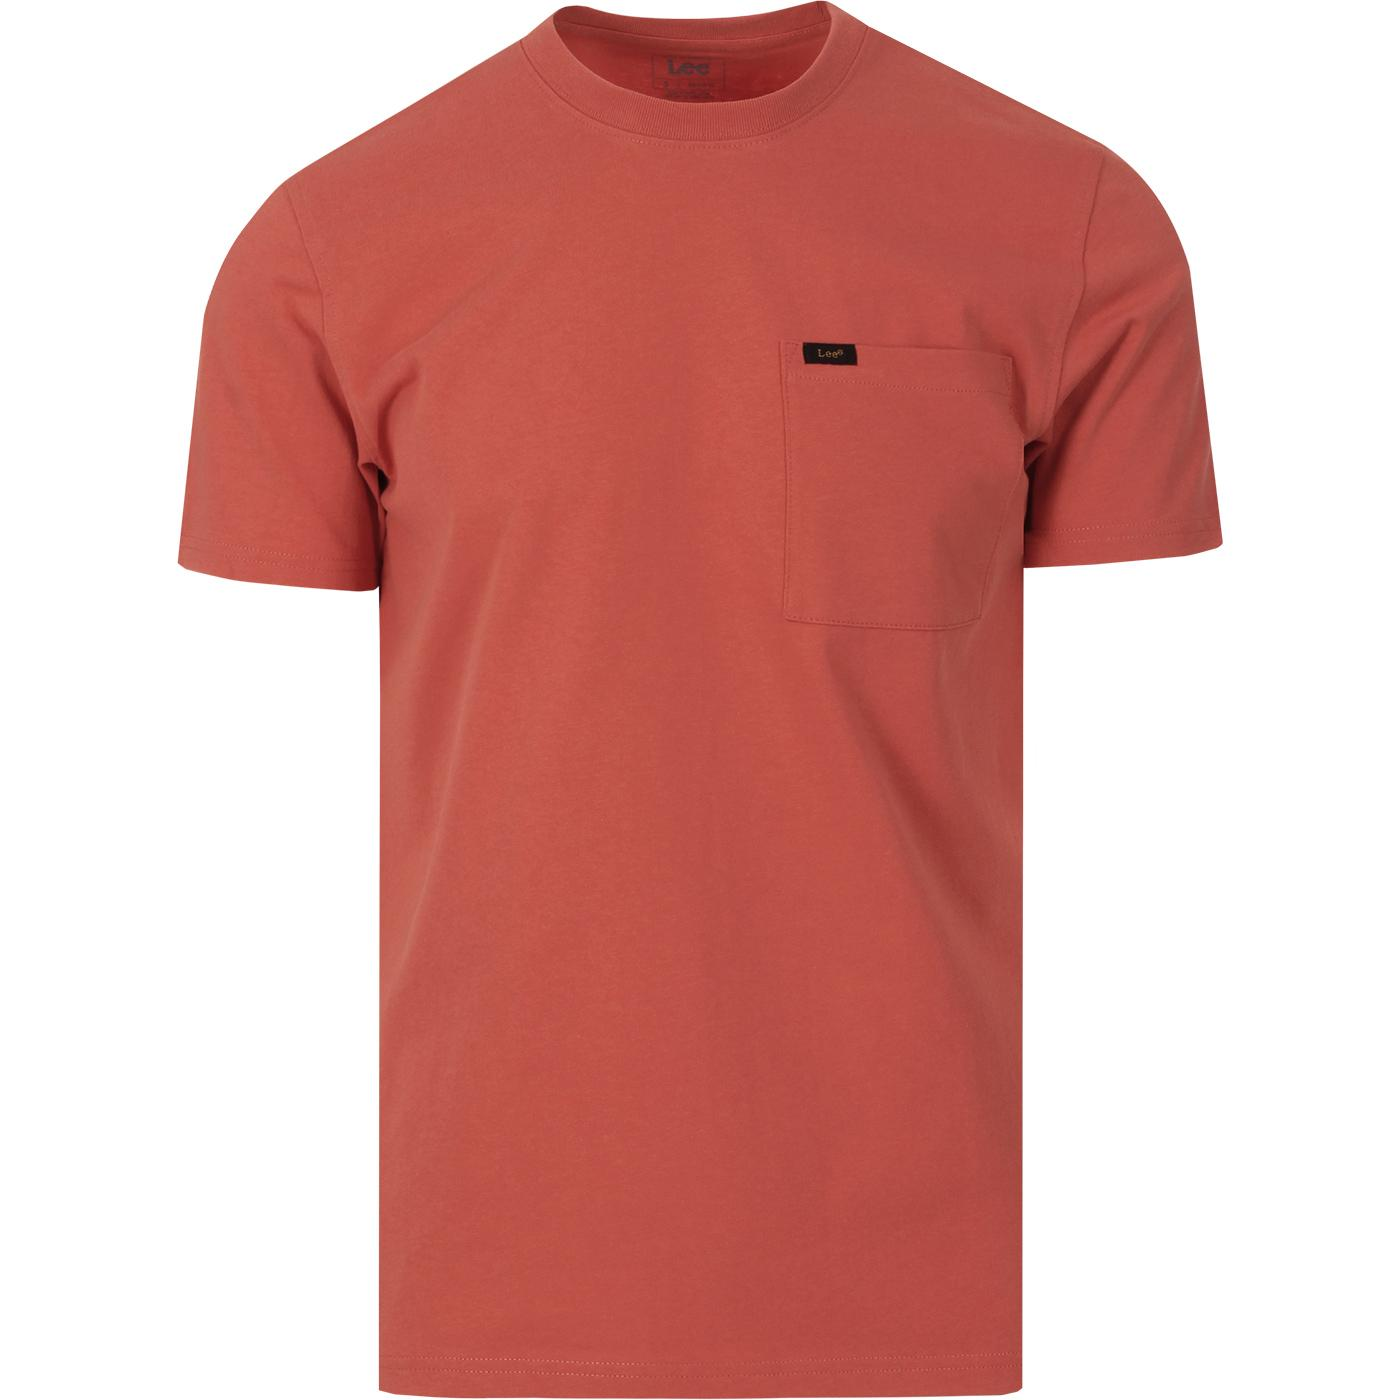 LEE JEANS Men's Retro Crew Pocket Tee (Paprika)